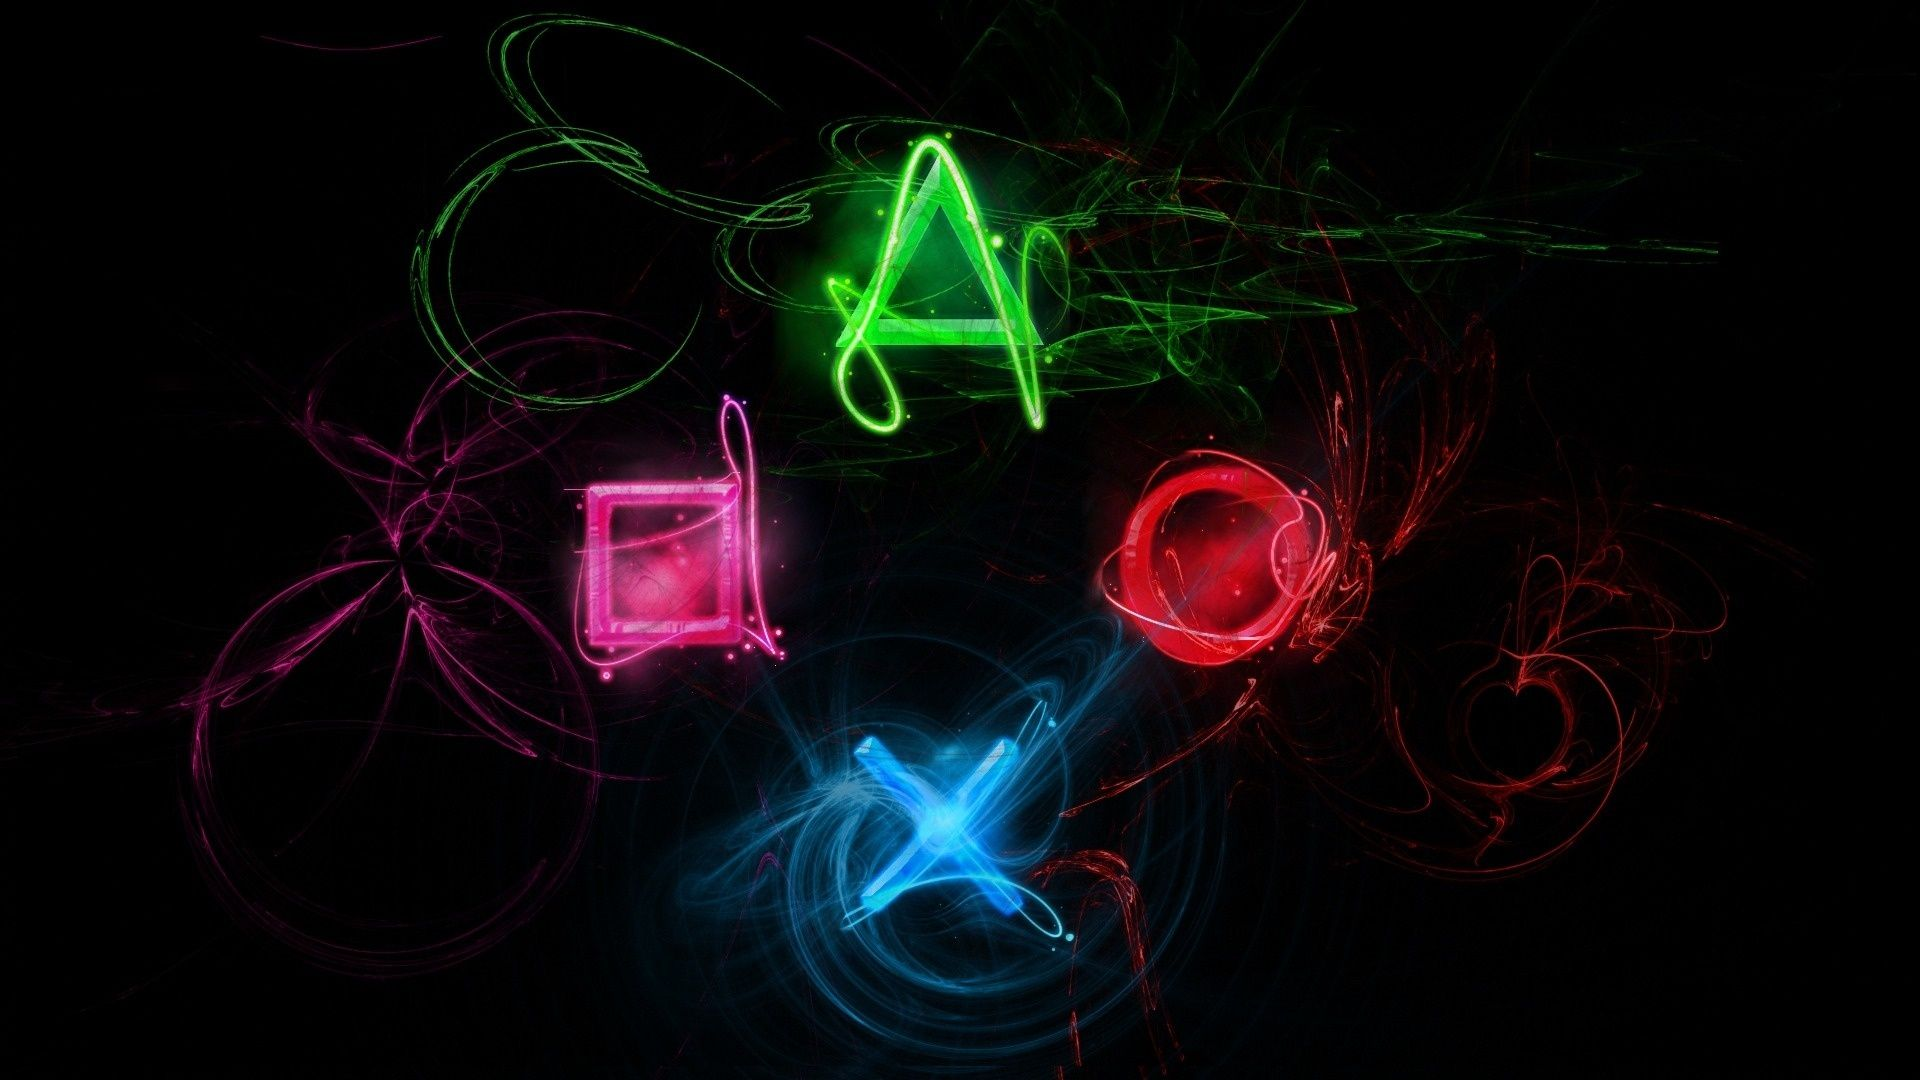 Download the Playstation Zombie Wallpaper, Playstation